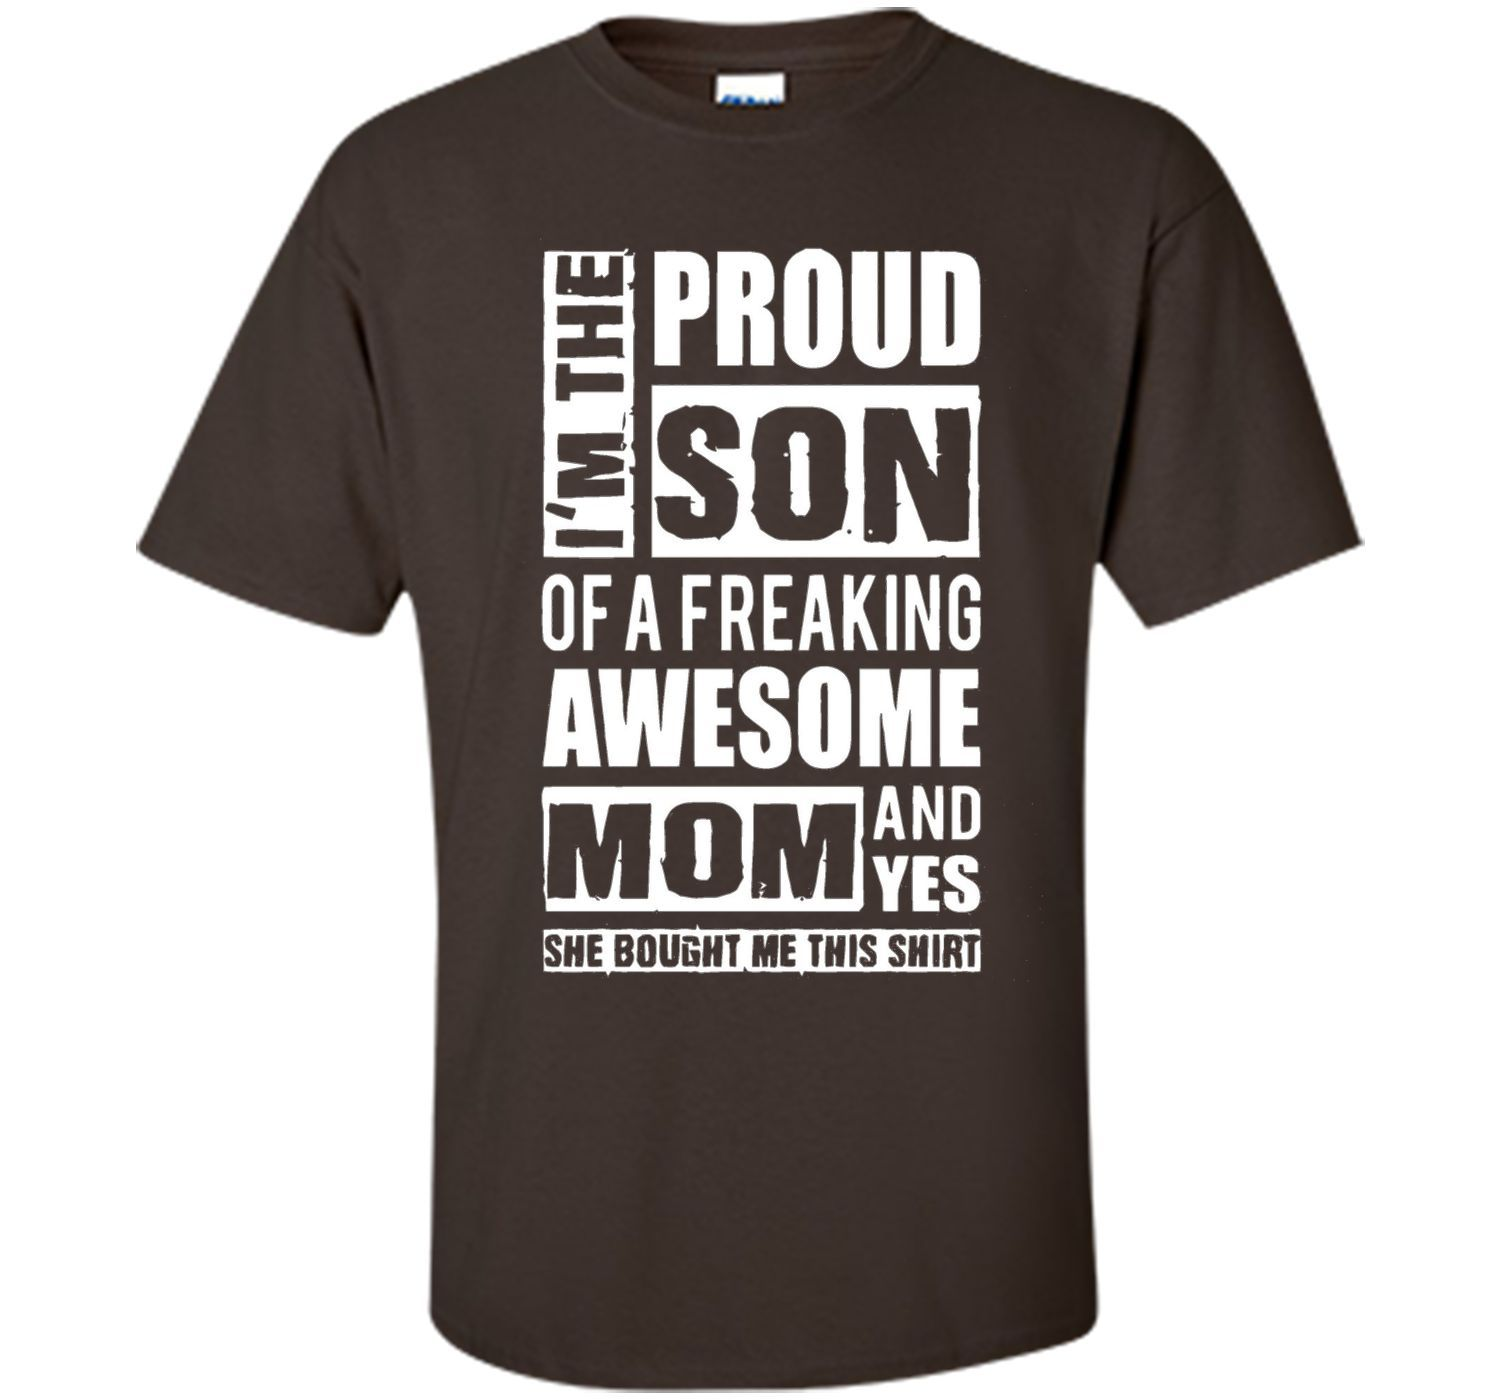 I'm The Proud Son of A Freaking Awesome Mom T-Shirt cool shirt